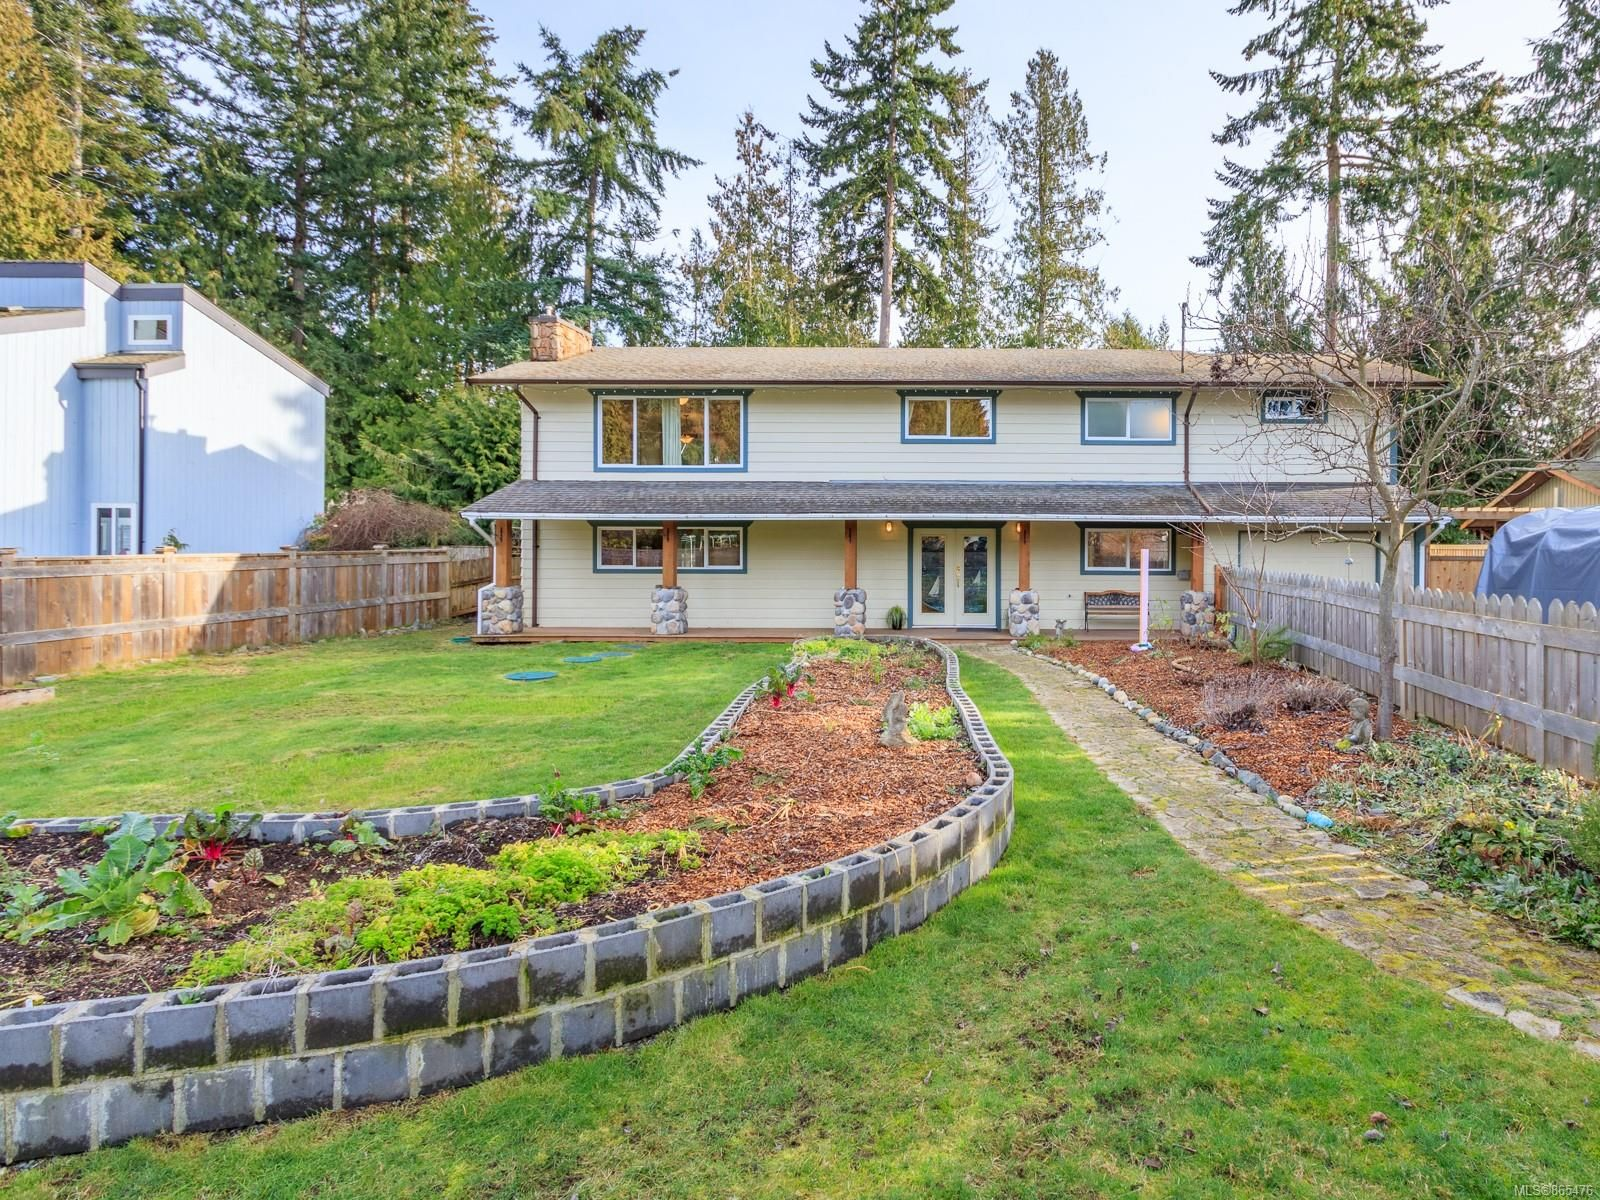 Main Photo: 868 Ballenas Rd in : PQ Parksville House for sale (Parksville/Qualicum)  : MLS®# 865476